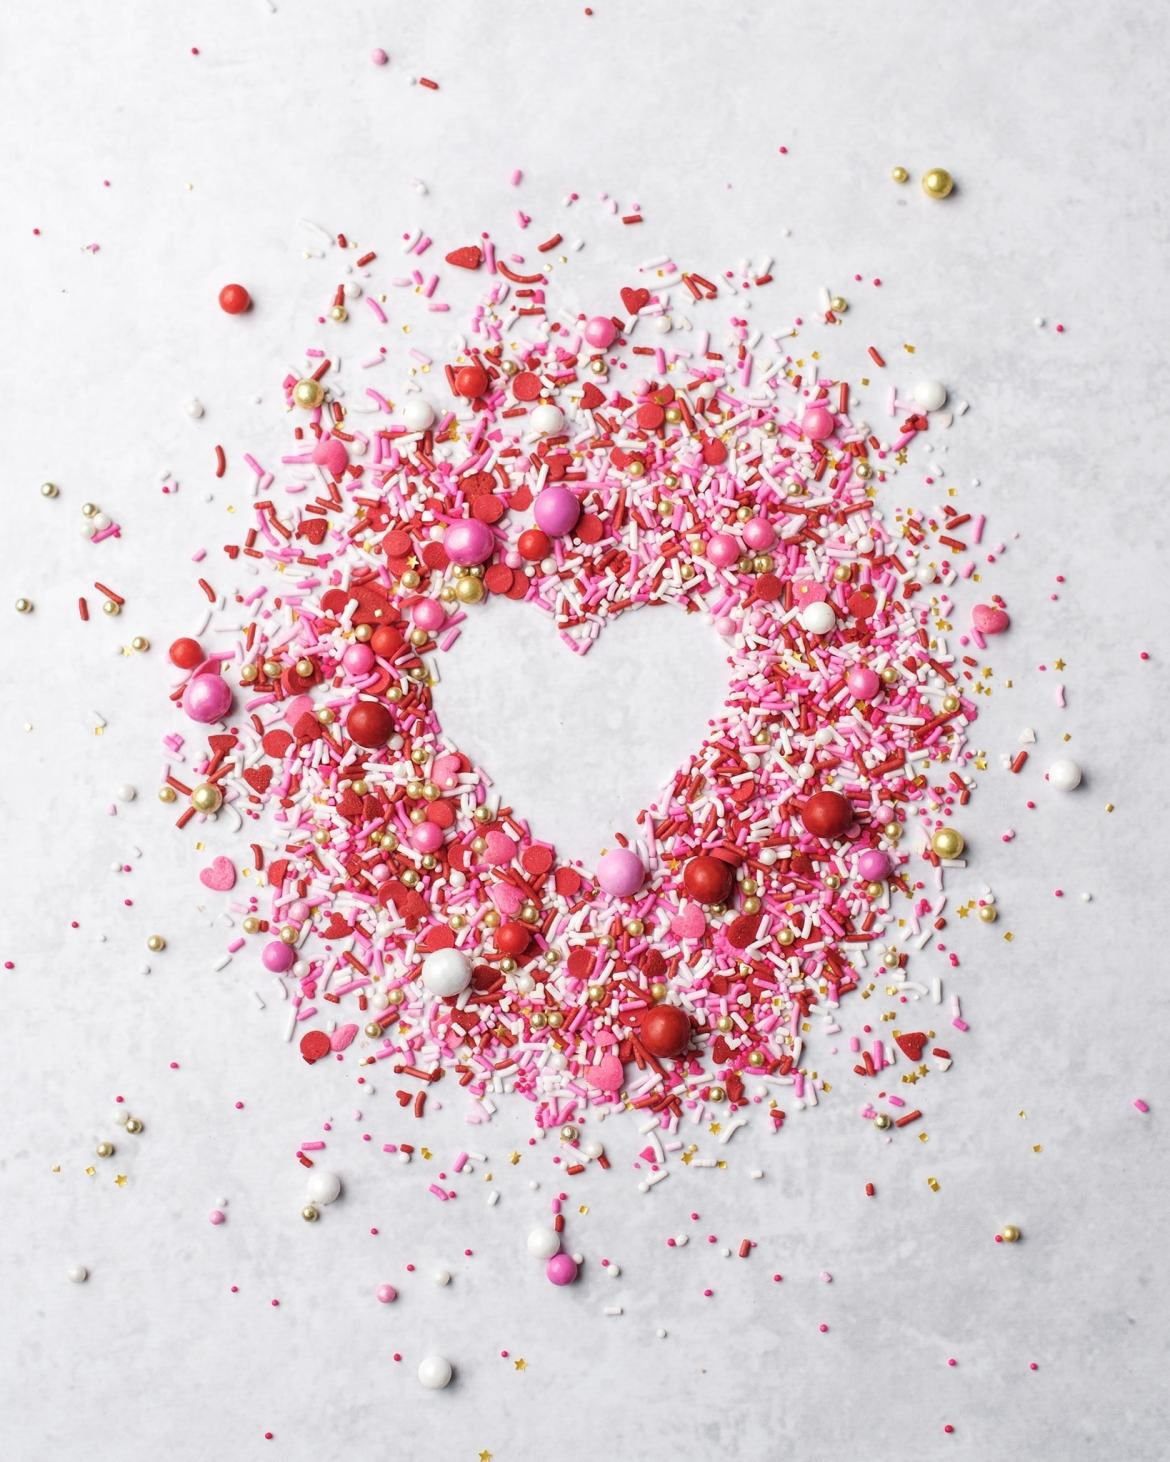 Pink, red, gold, and white sprinkles surrounding a negative space of a heart shape